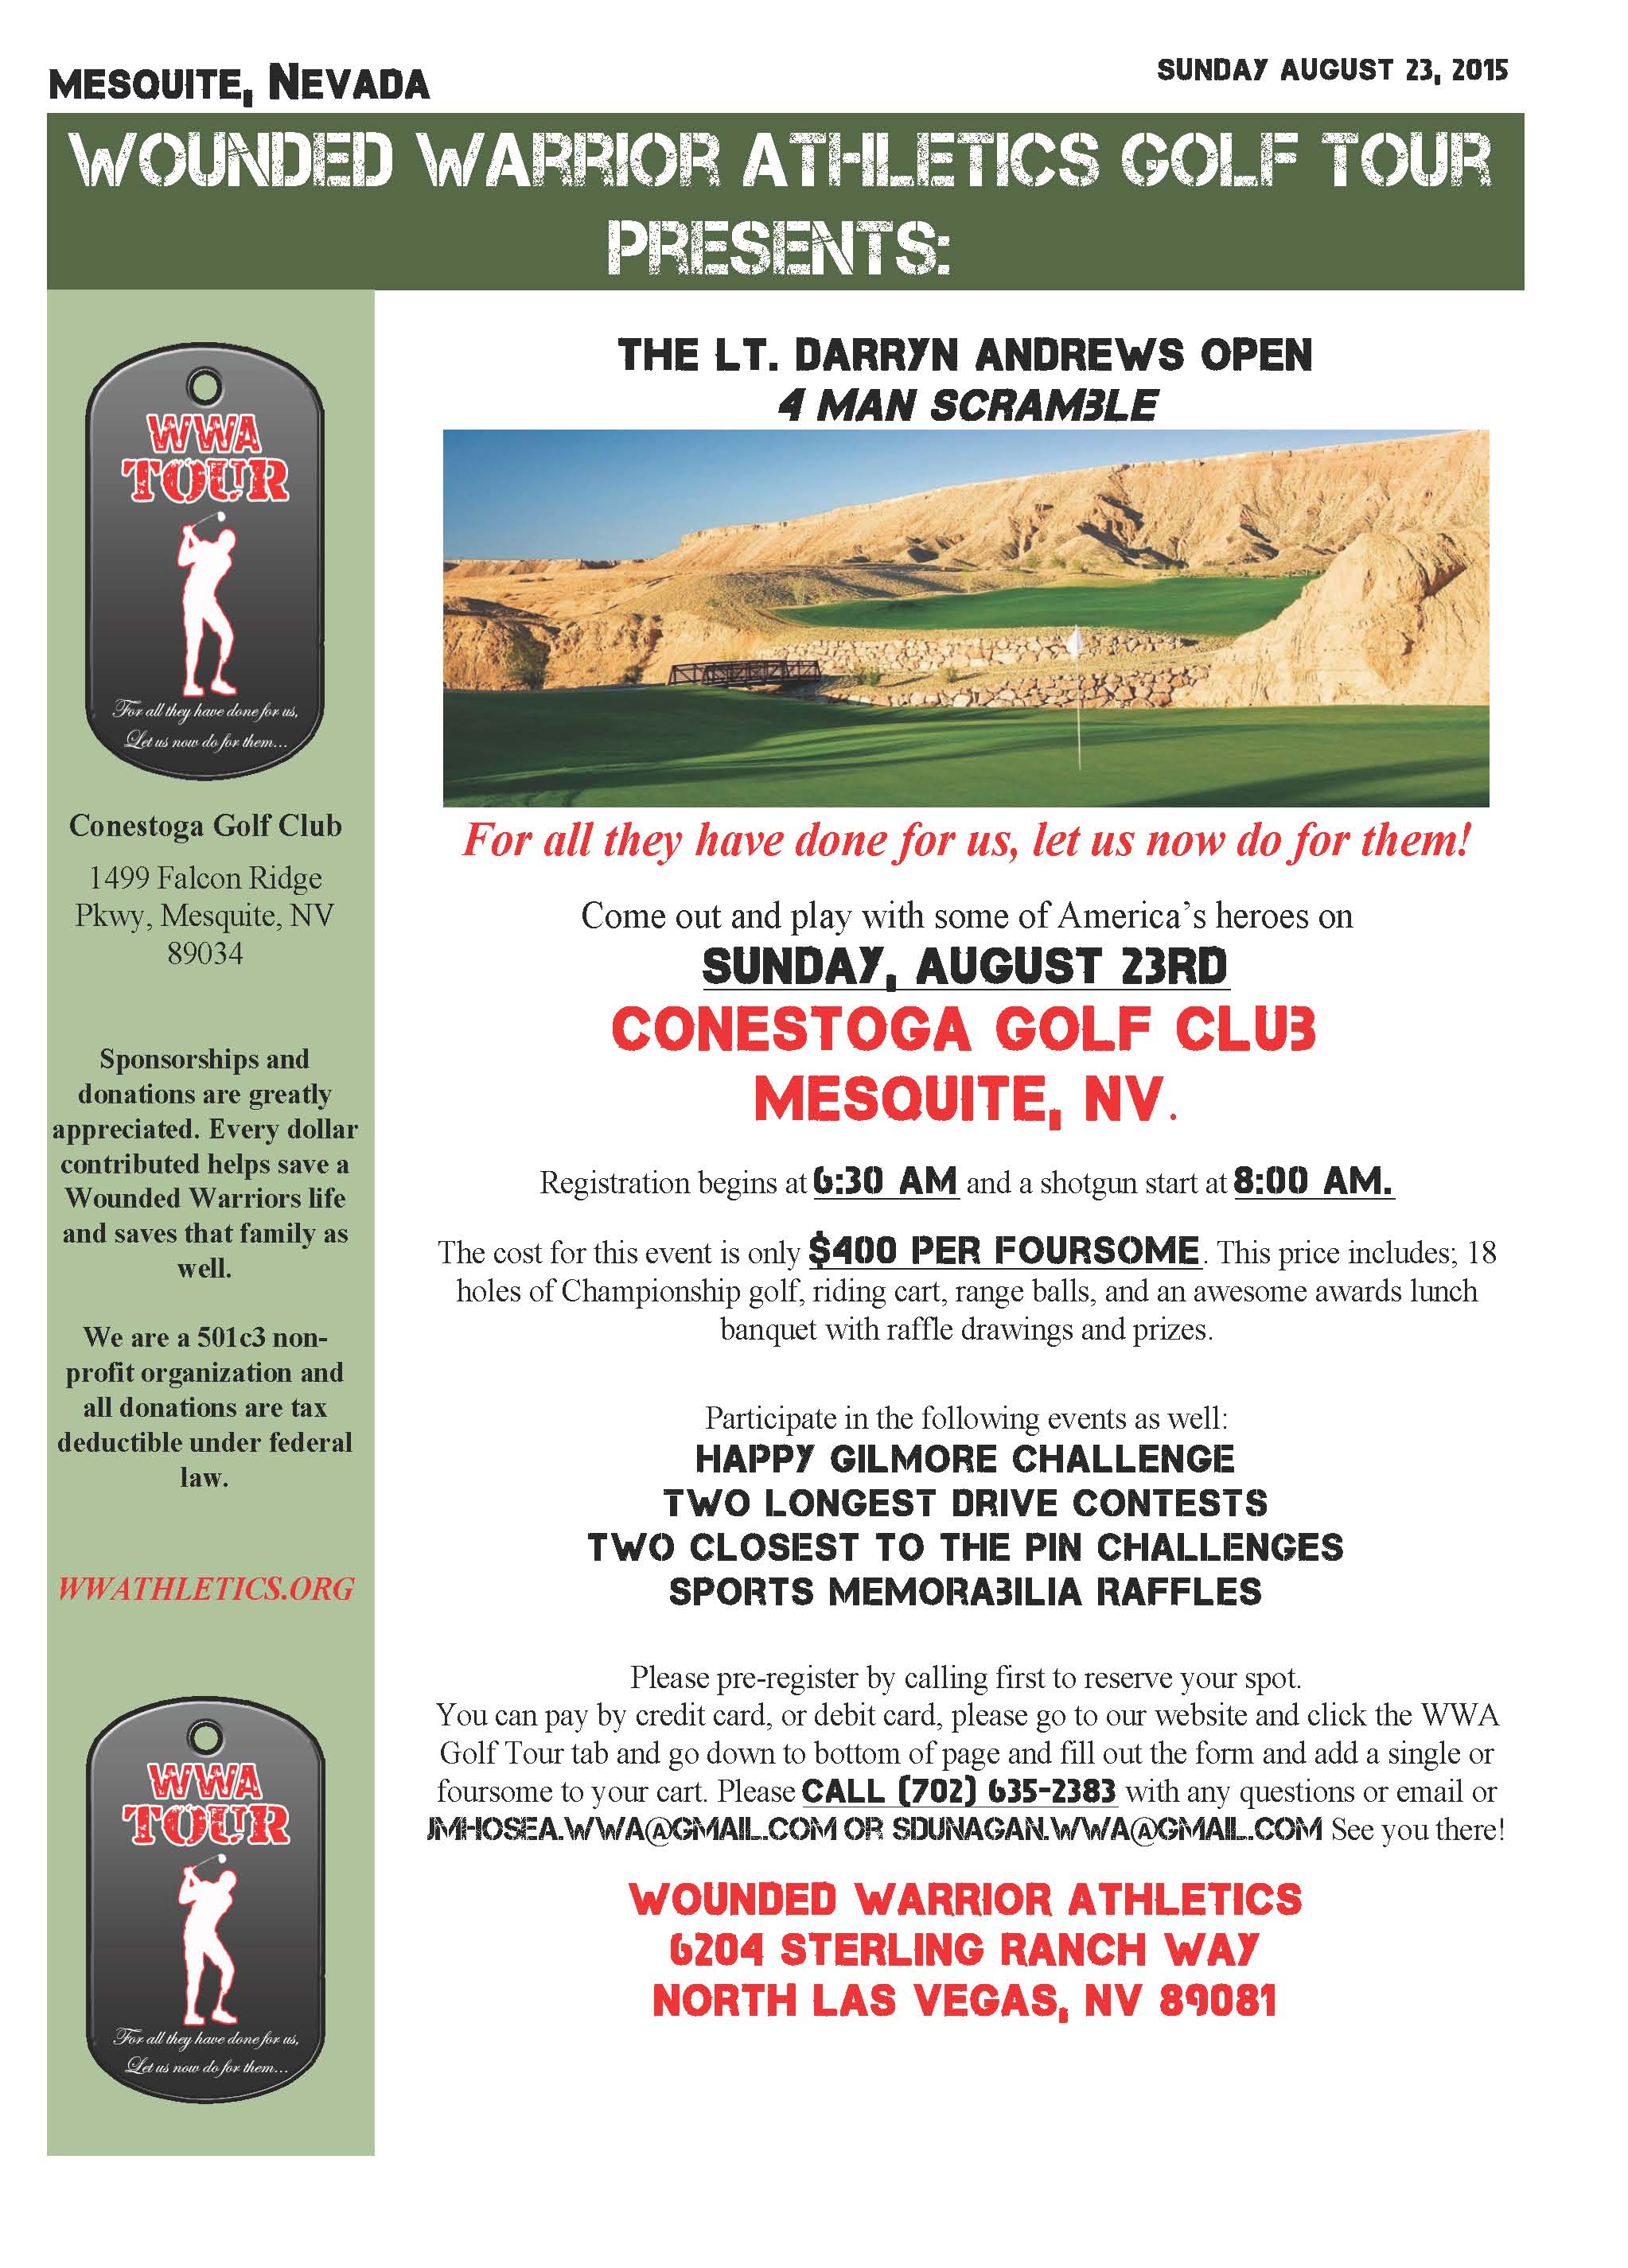 The LT. Darryn Andrews Open Golf Tournament in Mesquite